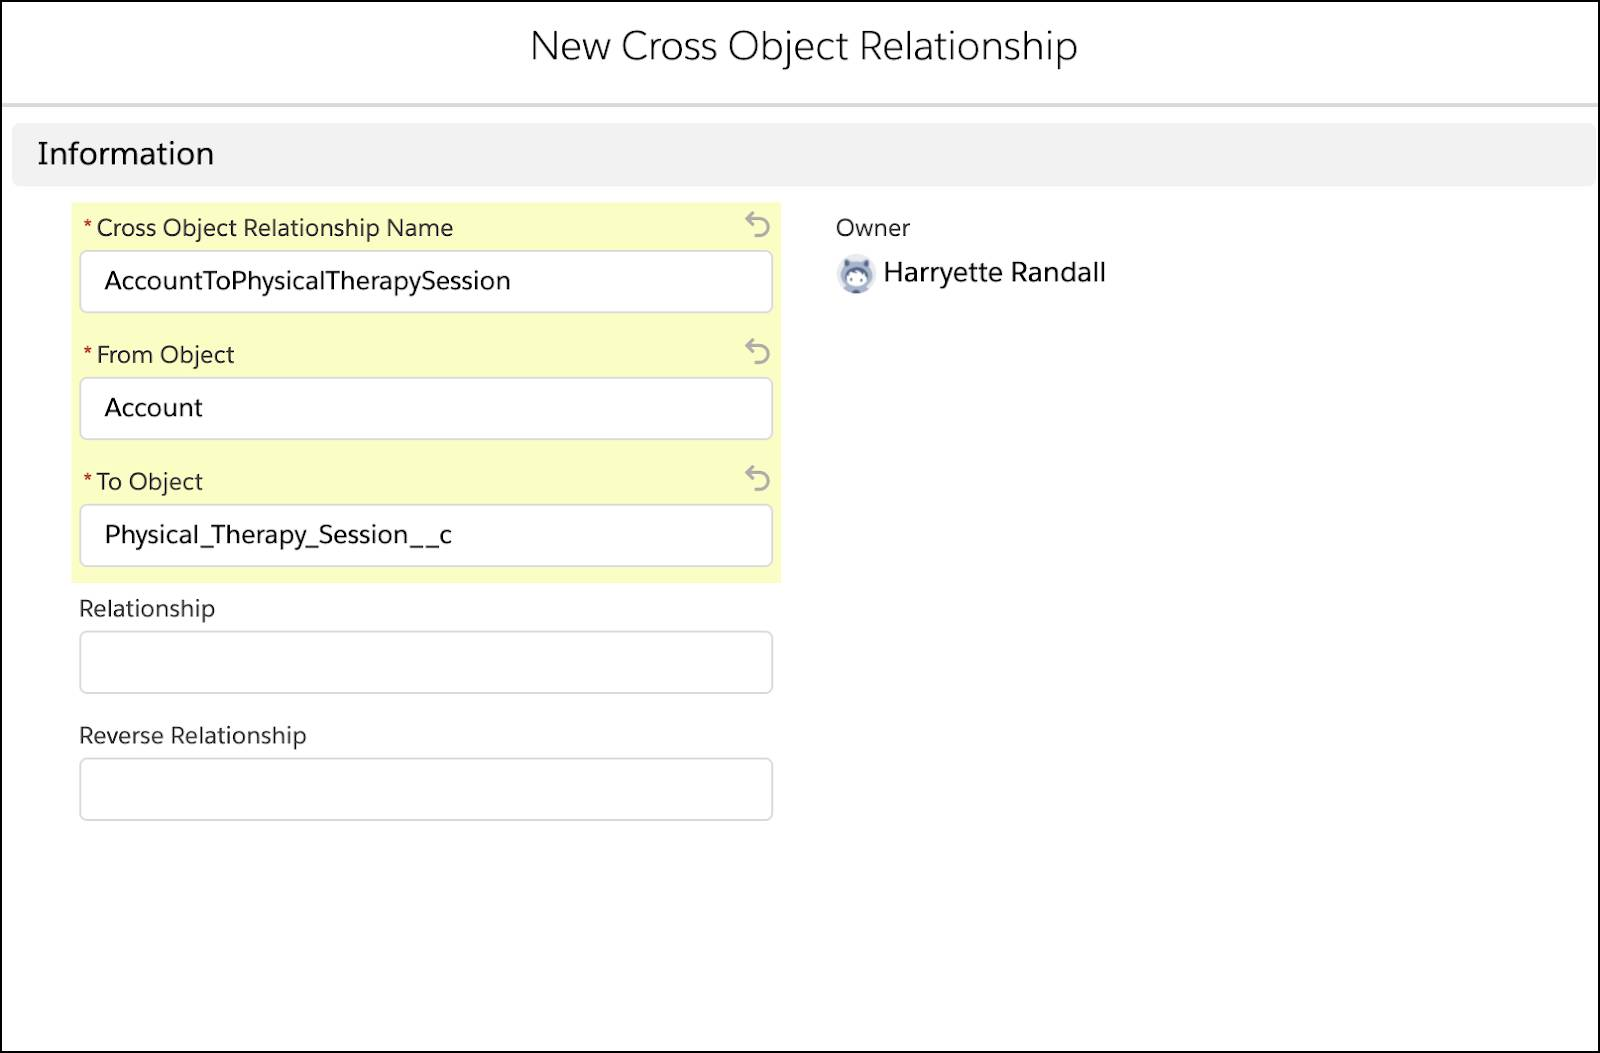 A new cross object relationship corresponding to the preceding steps